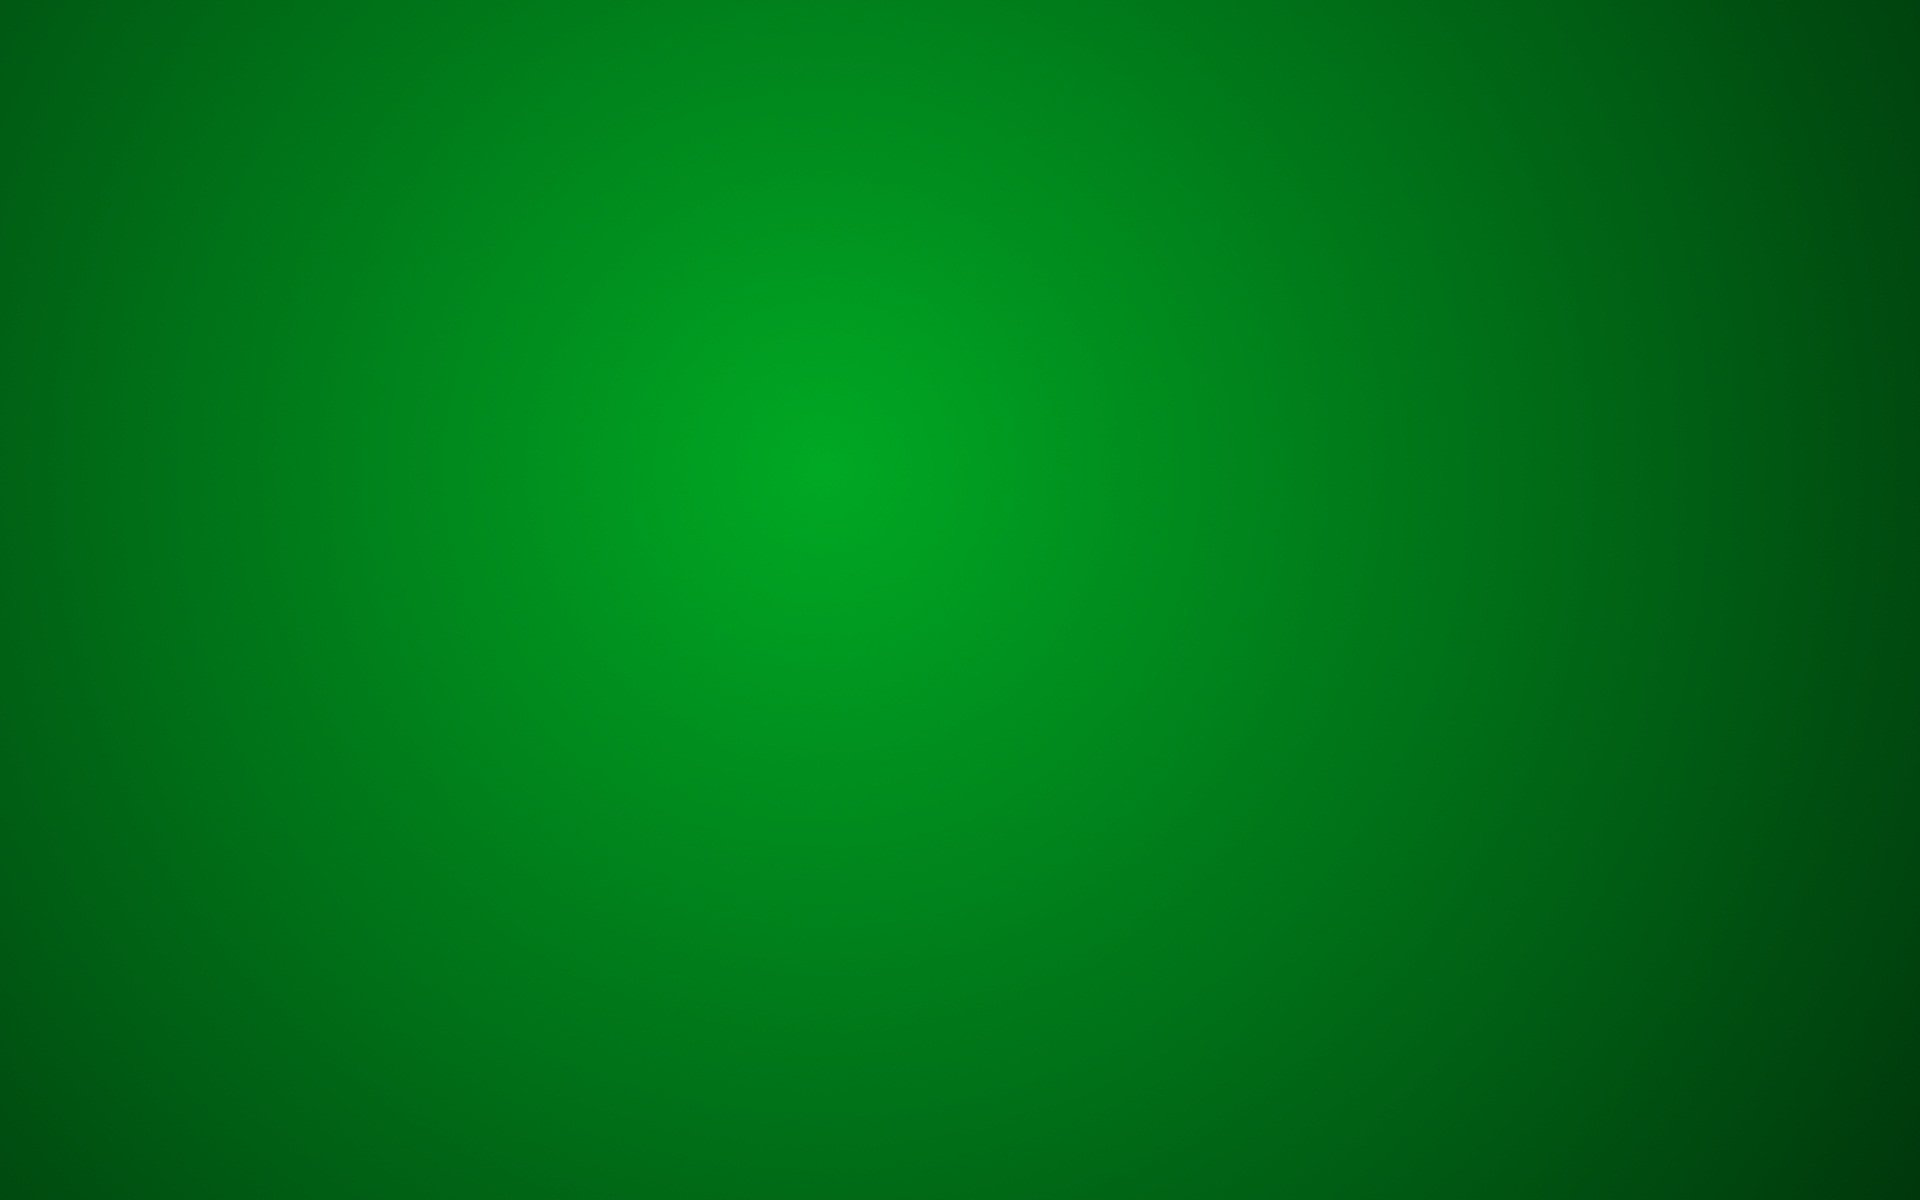 Green Hd Wallpaper Background Image 1920x1200 Id477025